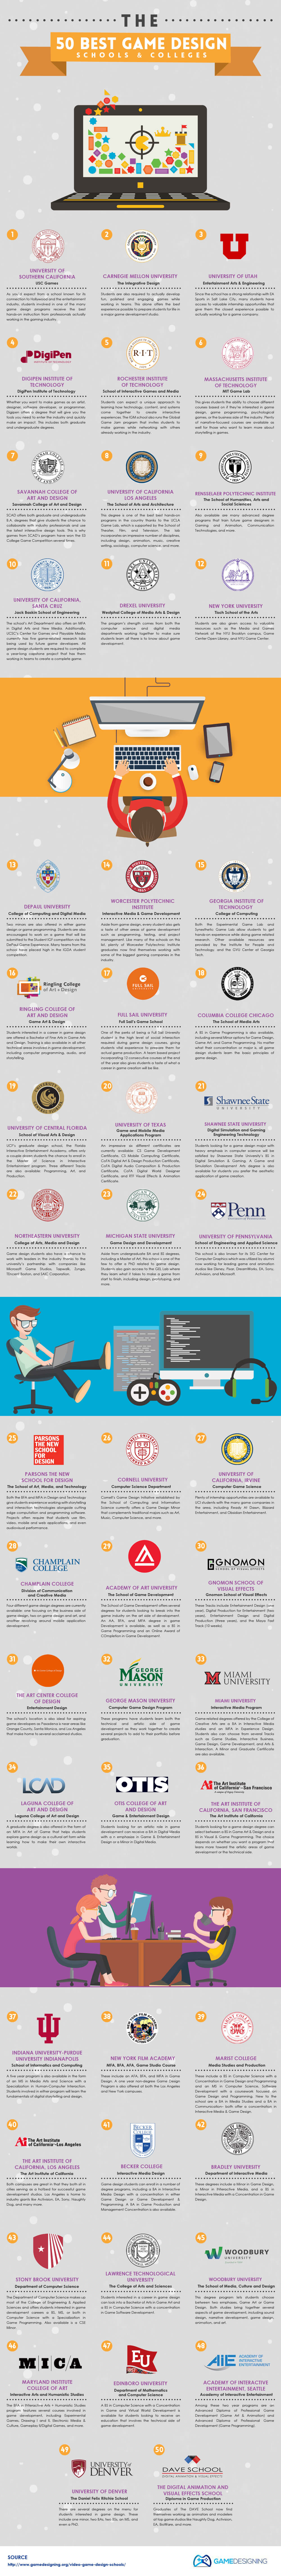 The Top 50 Colleges for Aspiring Game Designers Infographic